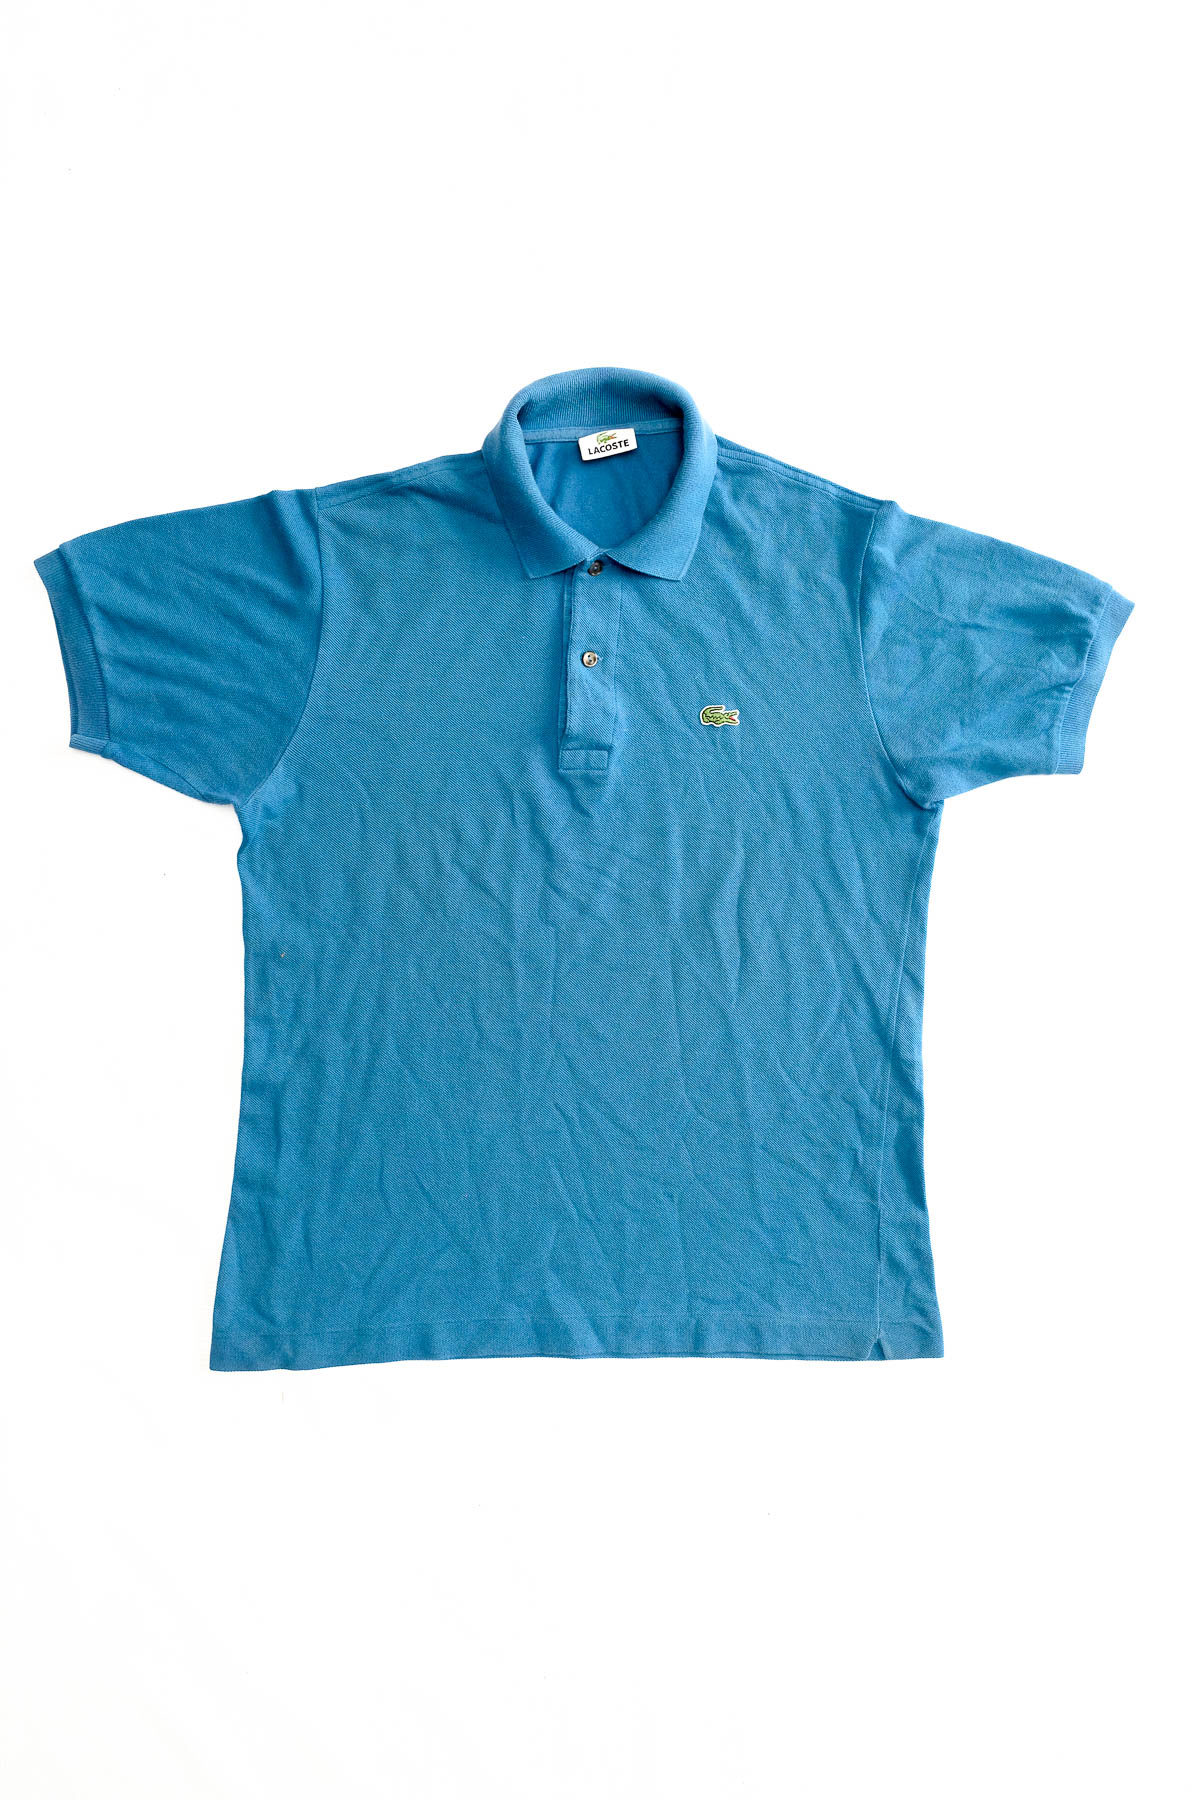 Lacoste POLO VINTAGE Light Blue